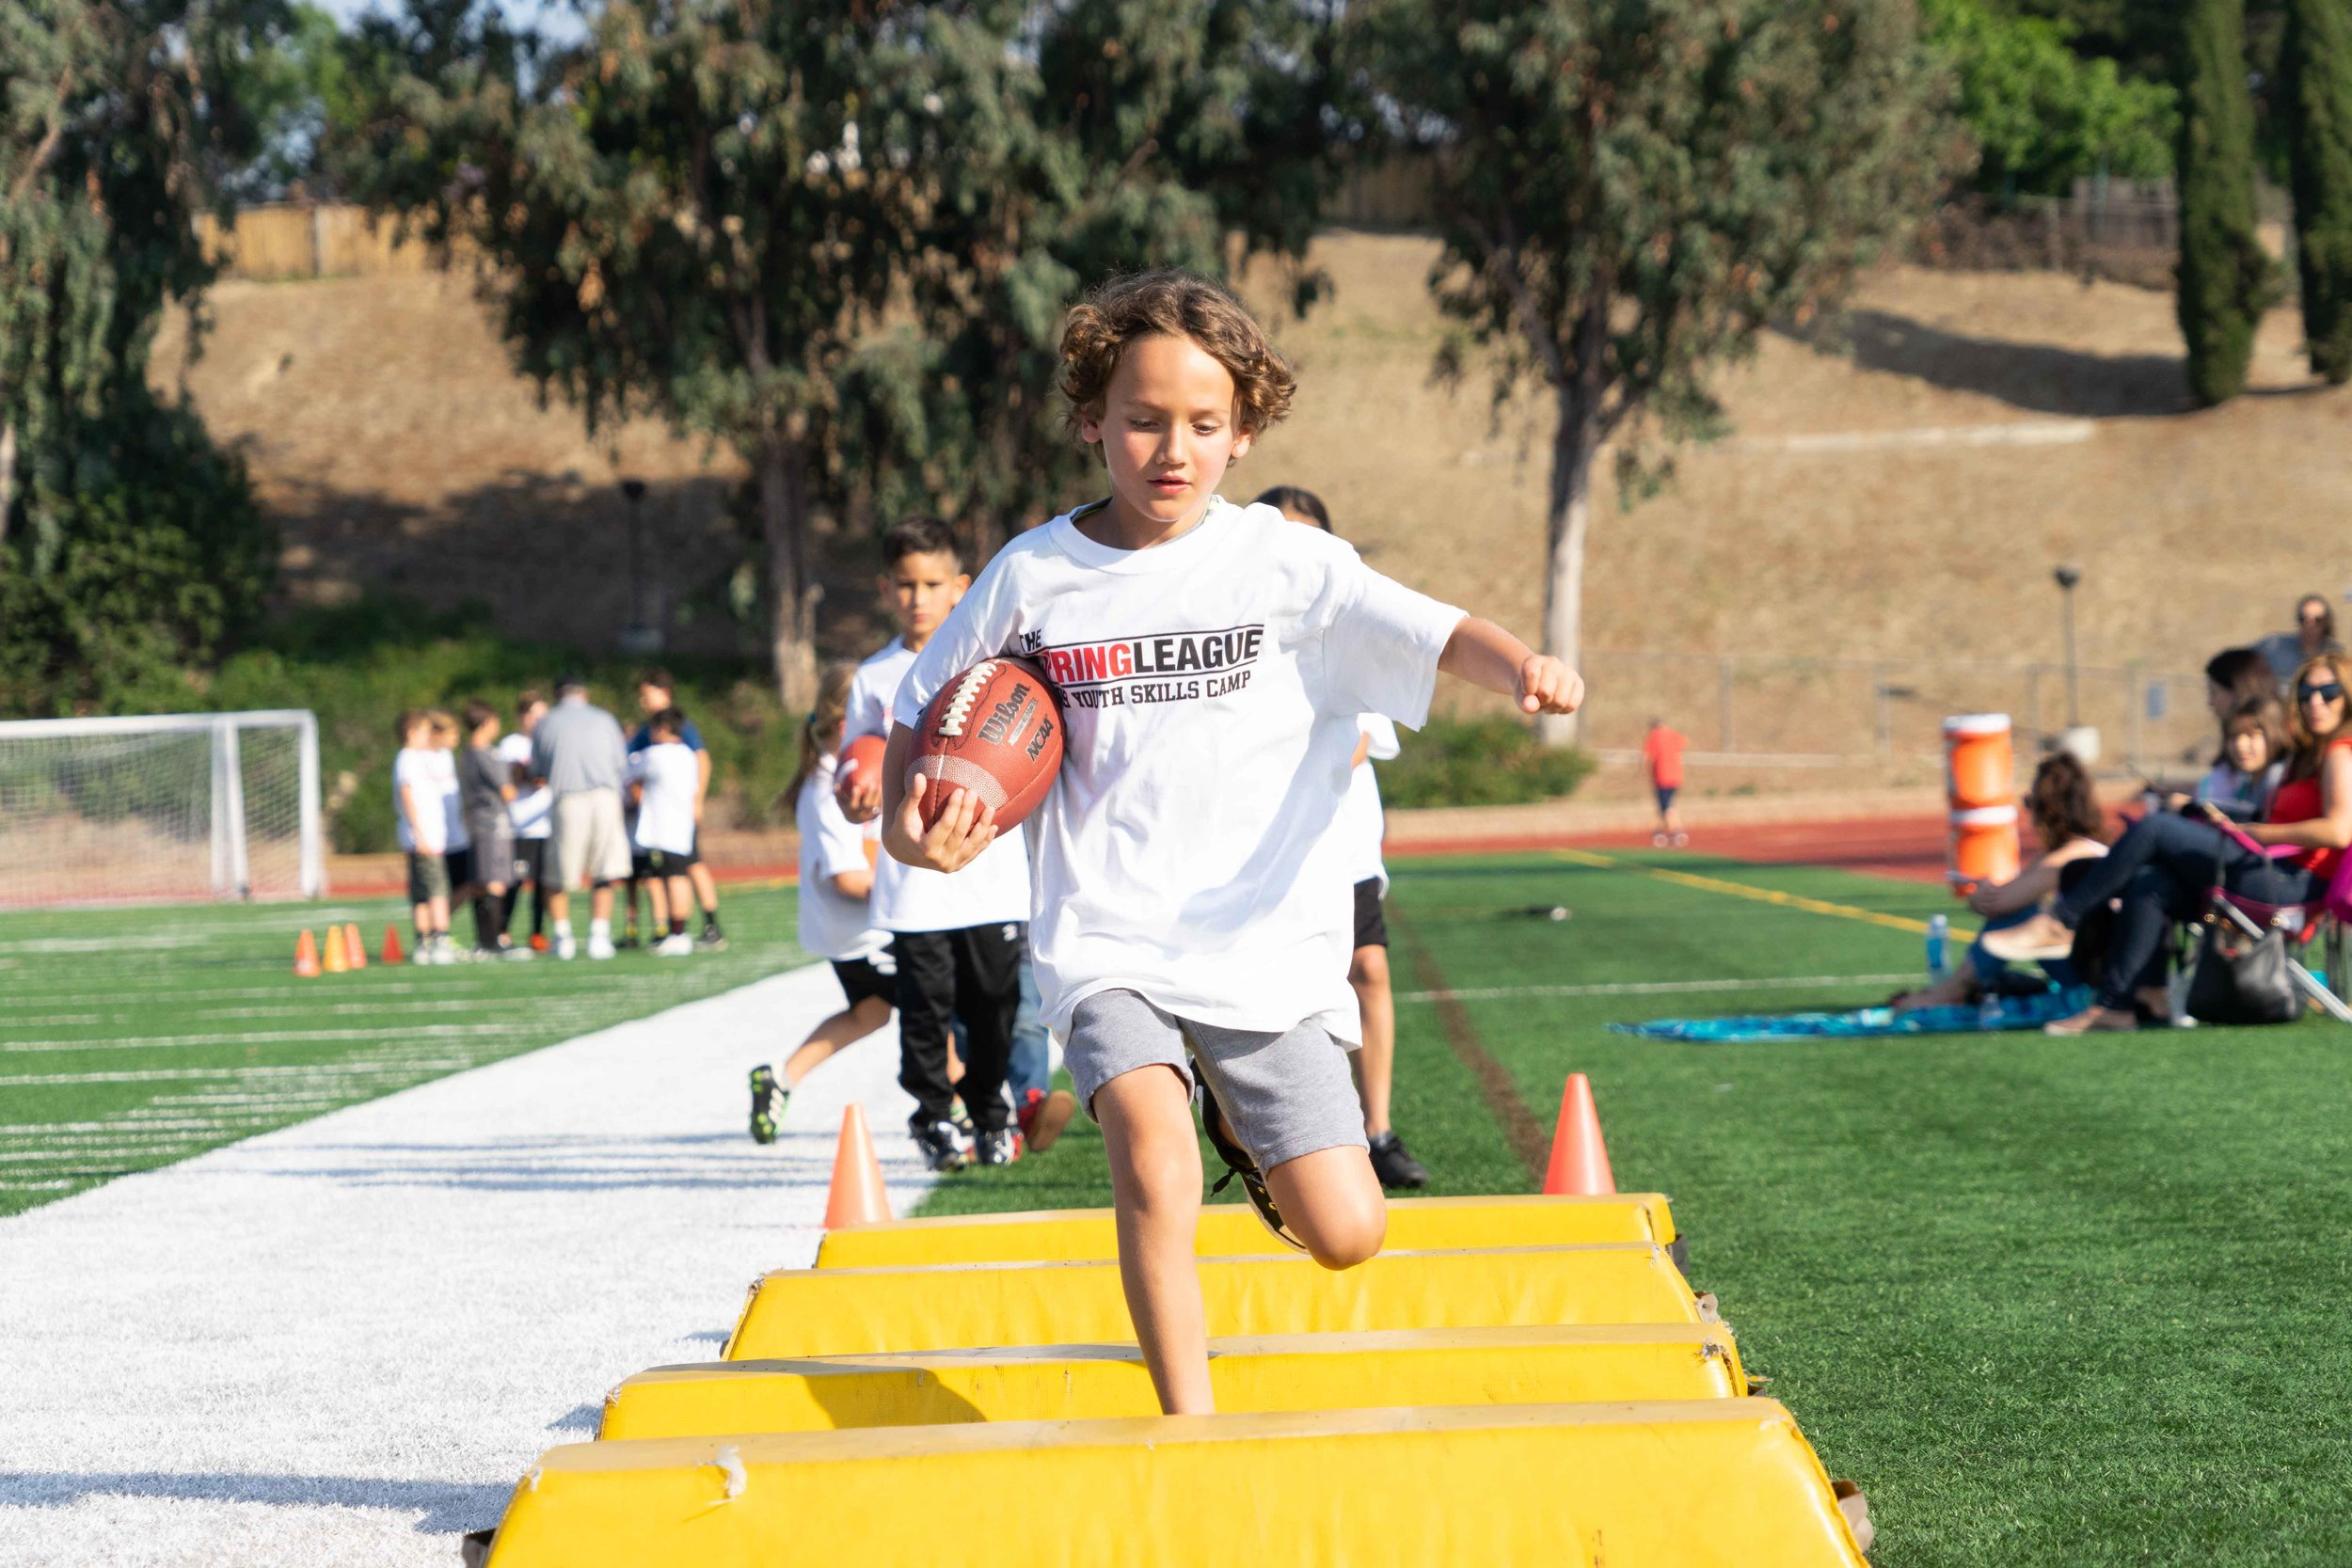 The Spring League Kids Skills Camp-80.jpg